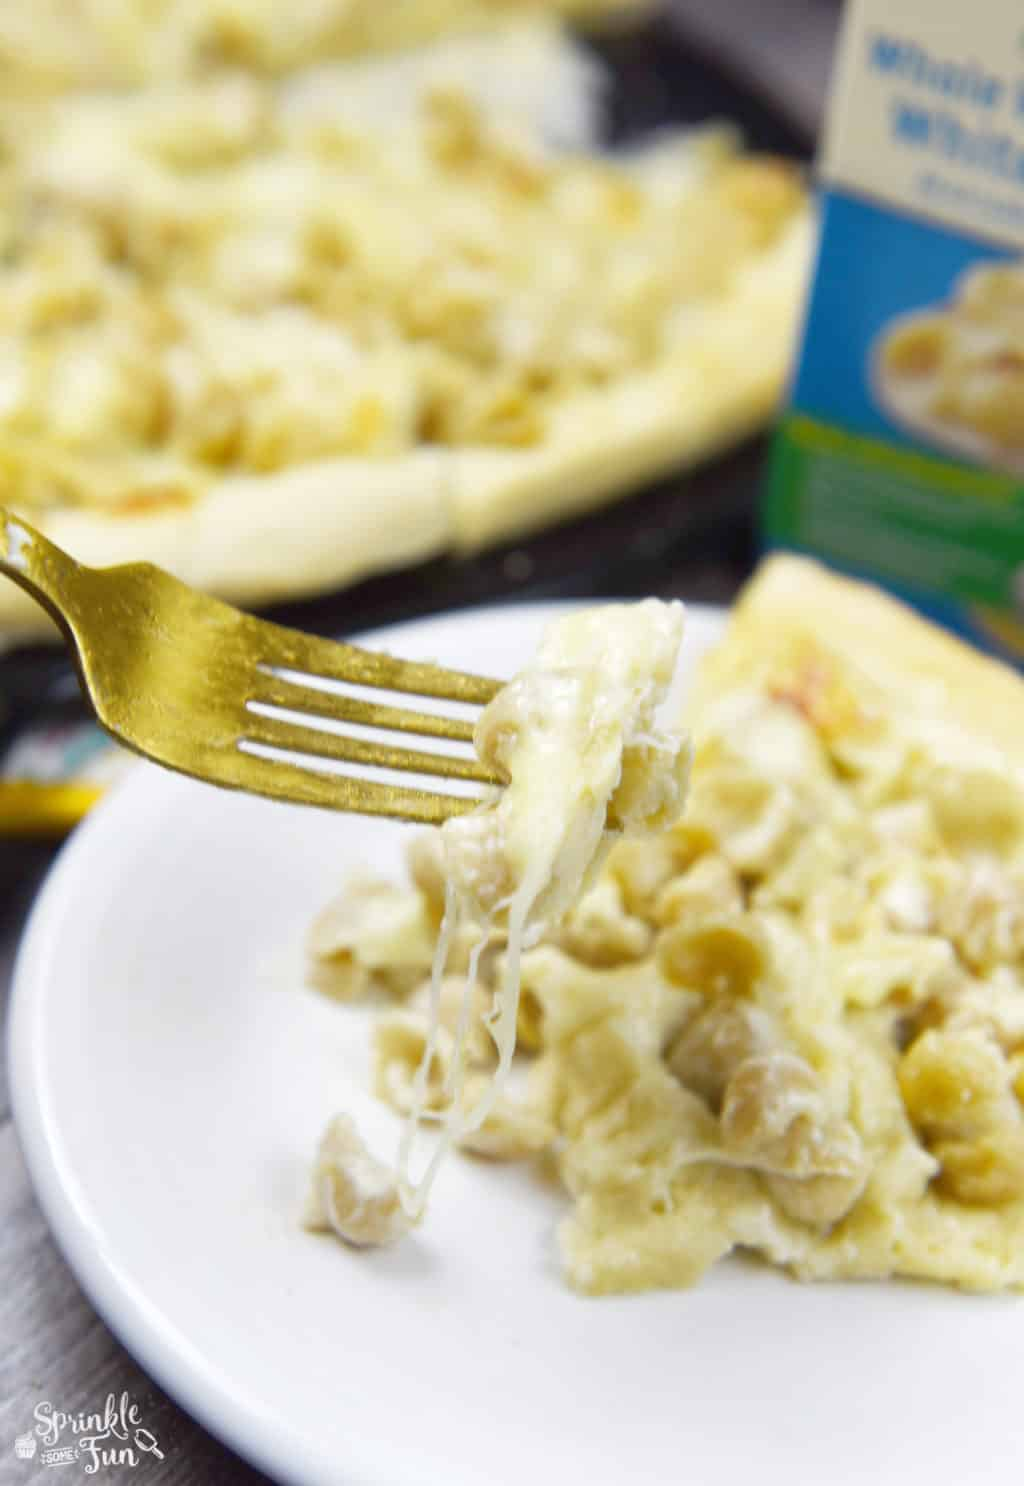 Alfredo Mac & Cheese Pizza is simply amazing.  I've had the Mac & Cheese pizzas before and so I wanted to change it up a little bit with Alfredo sauce.